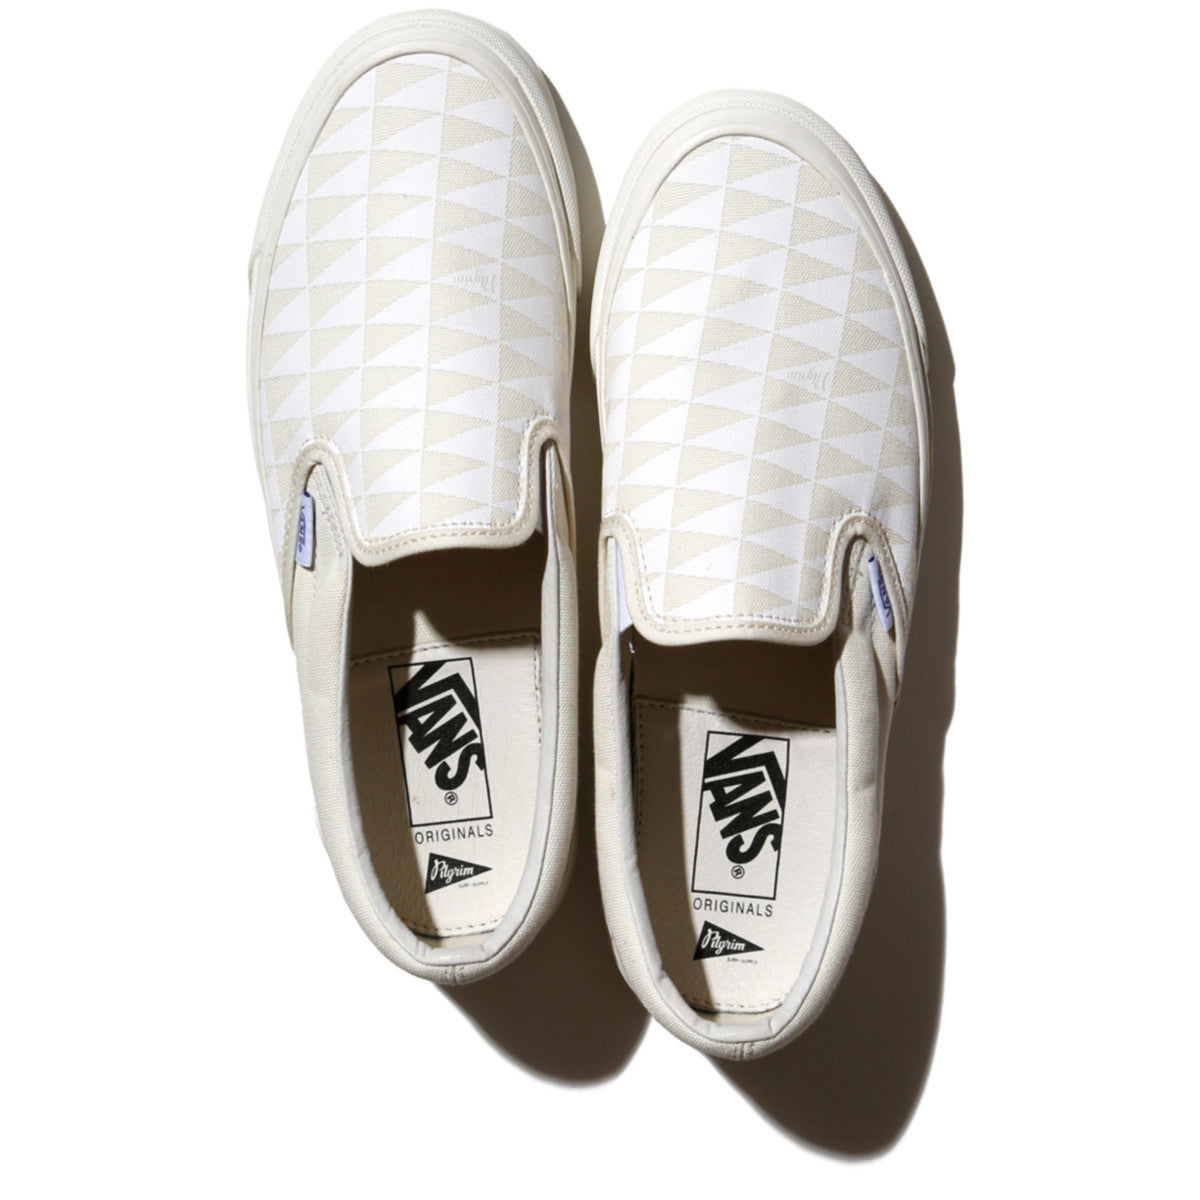 8ef45c7ebc5a Free domestic shipping does not apply to Vans purchases. SHOP HERE.